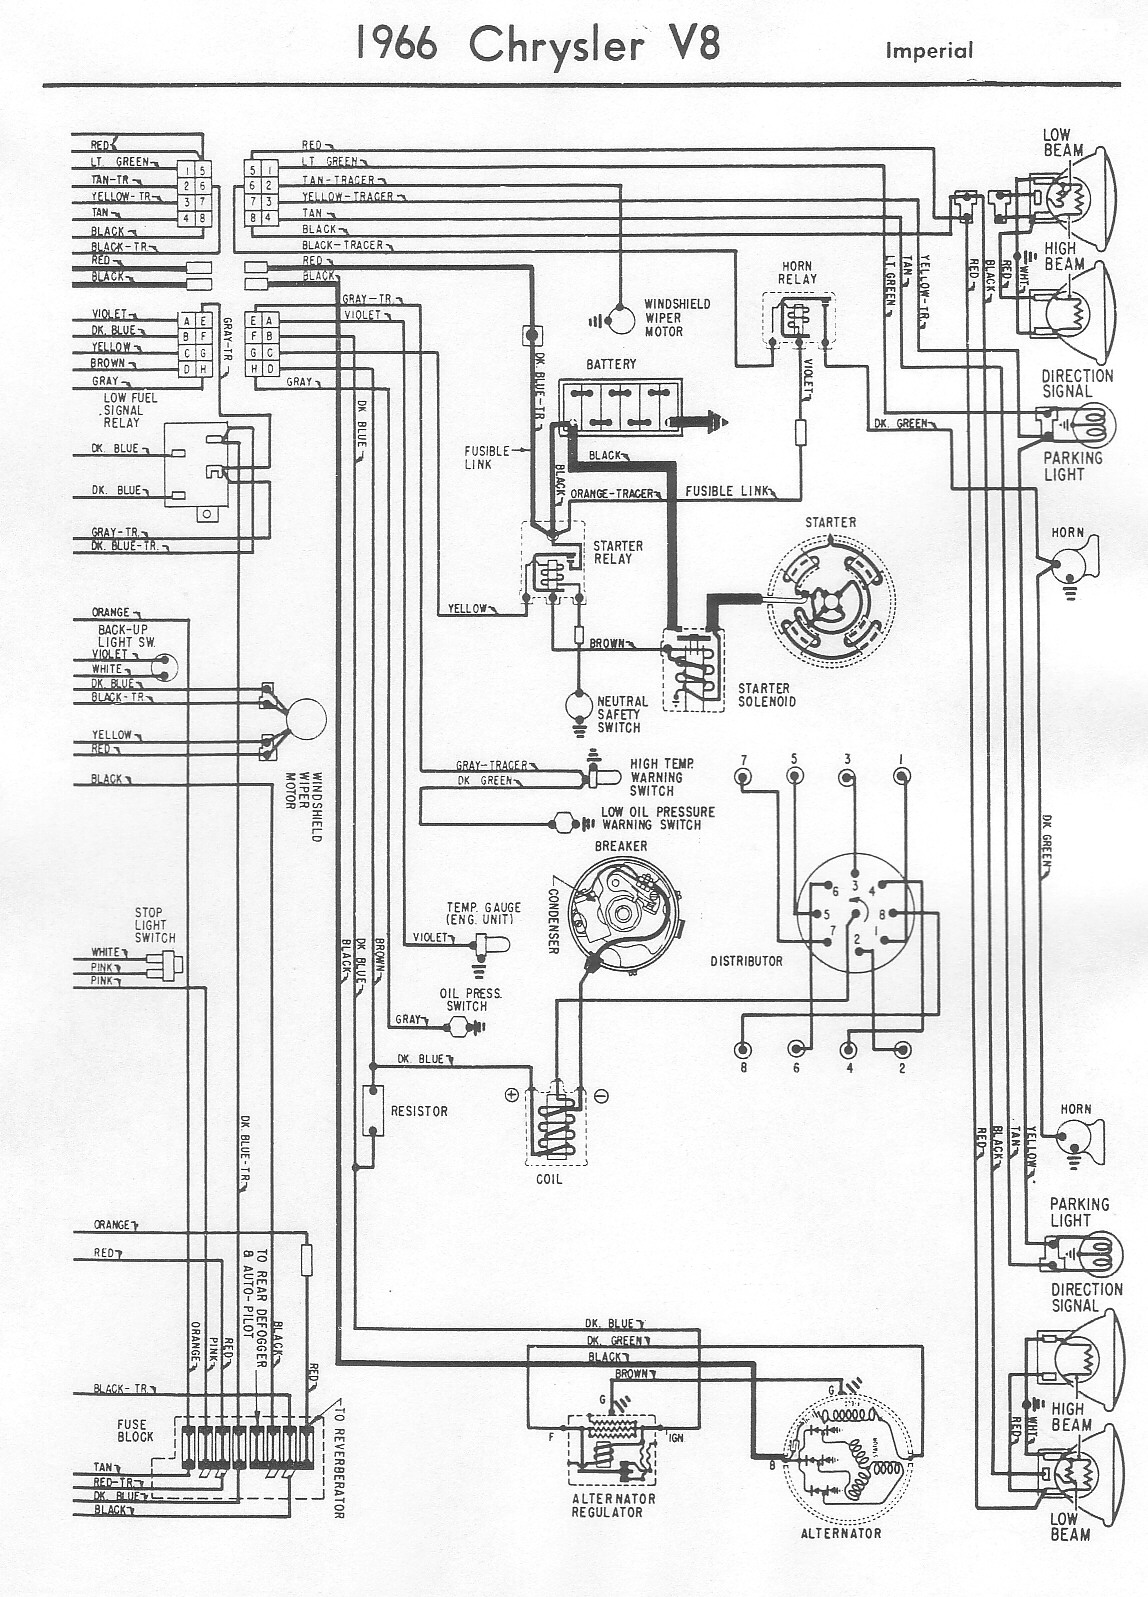 2005 Bluebird Vision Wiring Schematic. nissan car manuals